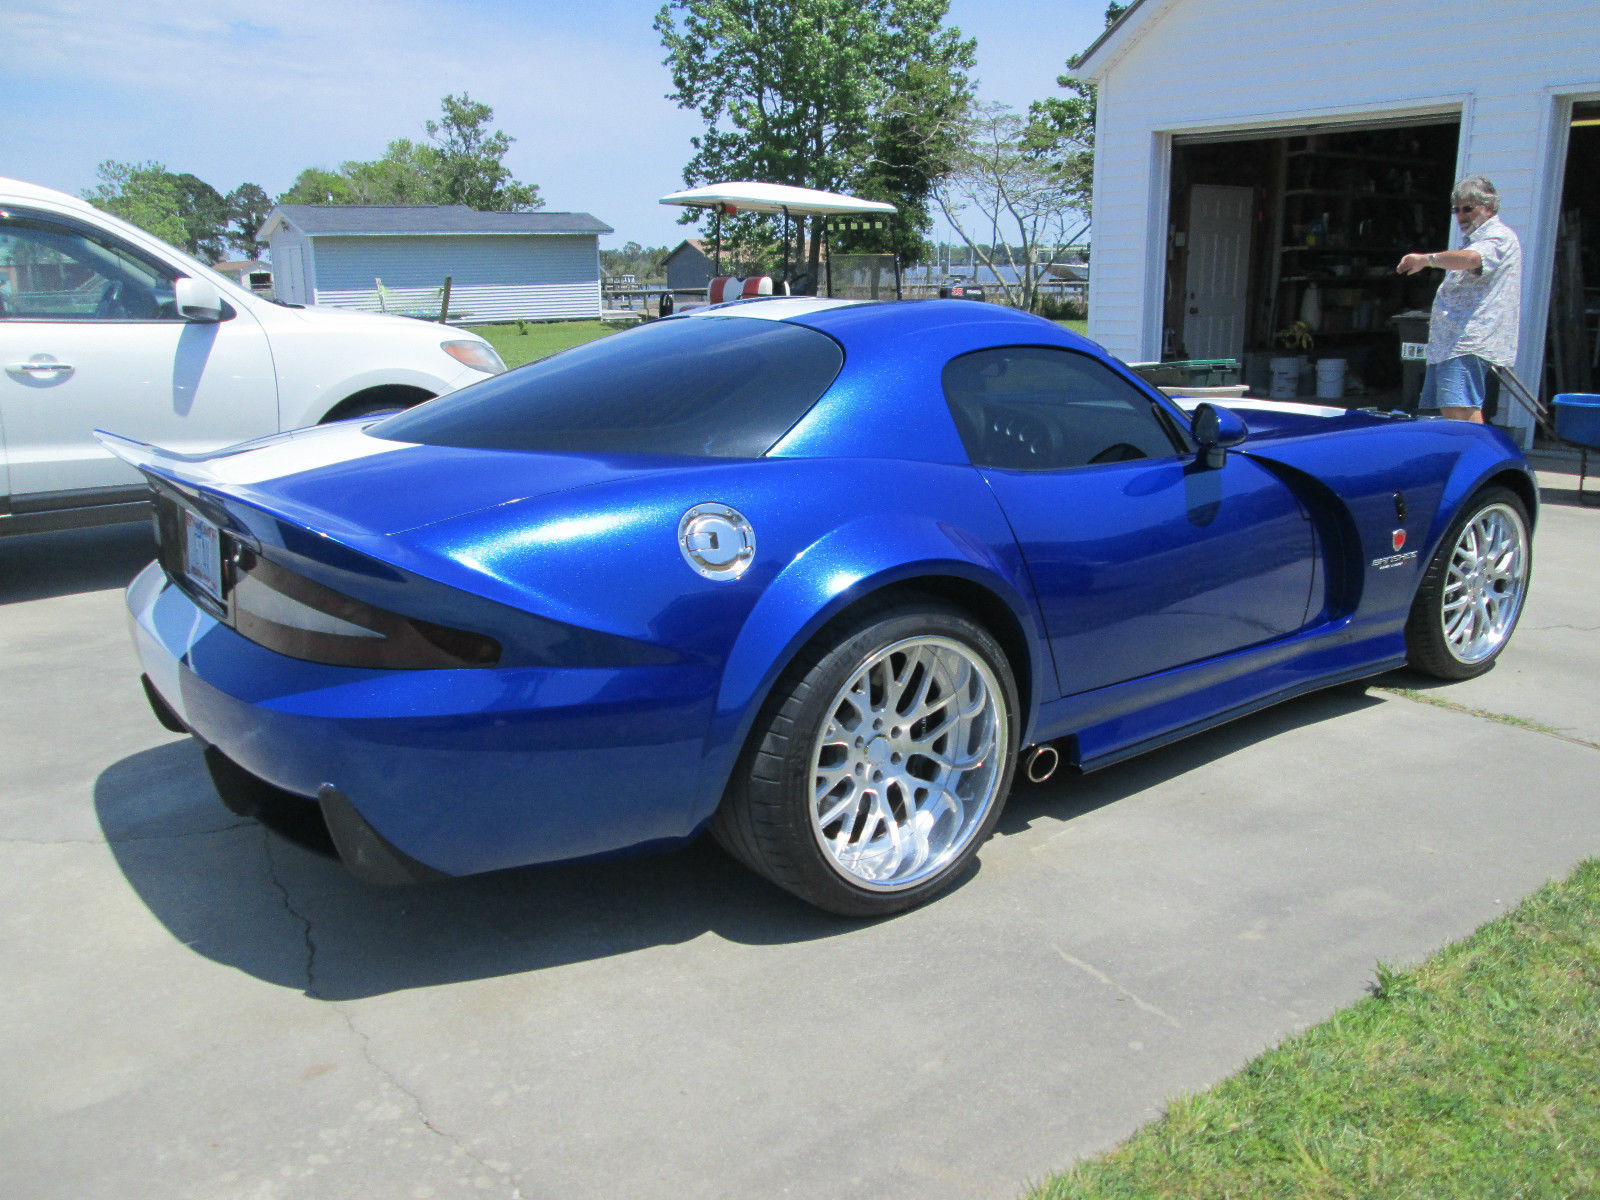 Grand Theft Auto Bravado Banshee For Sale on eBay - autoevolution